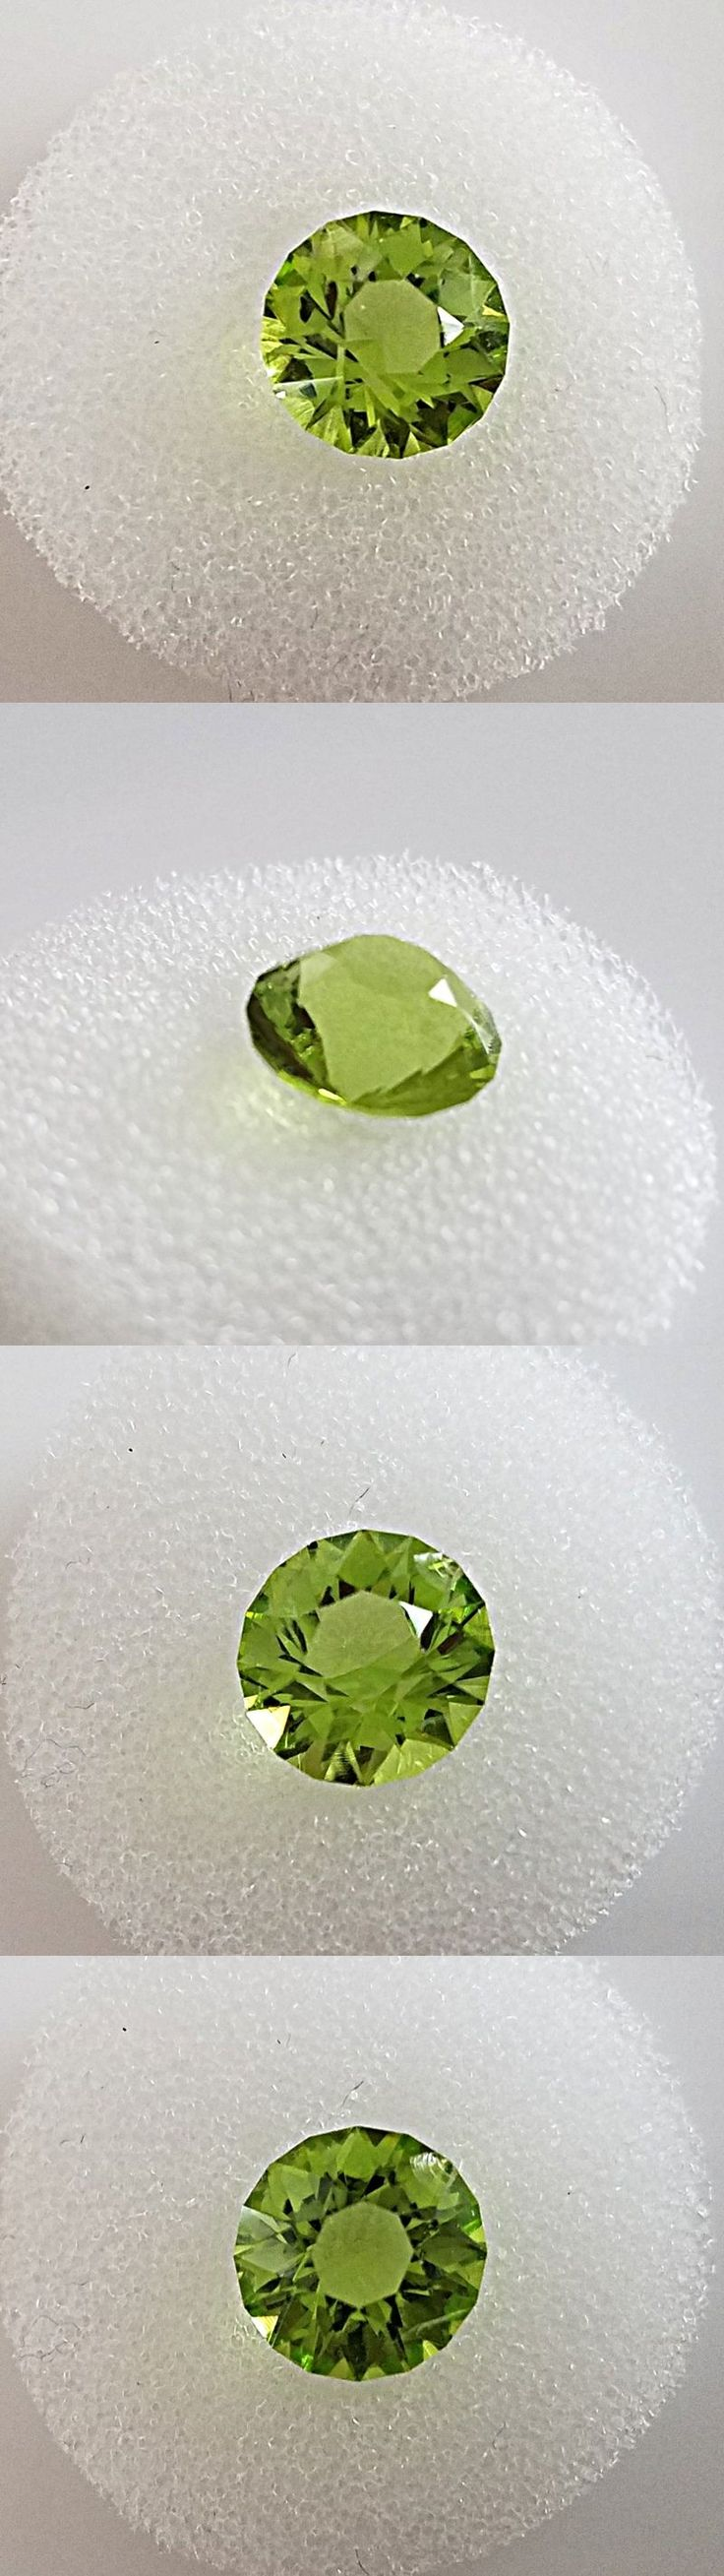 Peridot 10247: Natural Genuine Peridot Loose Stone 9Mm Round Faceted -> BUY IT NOW ONLY: $129 on eBay!